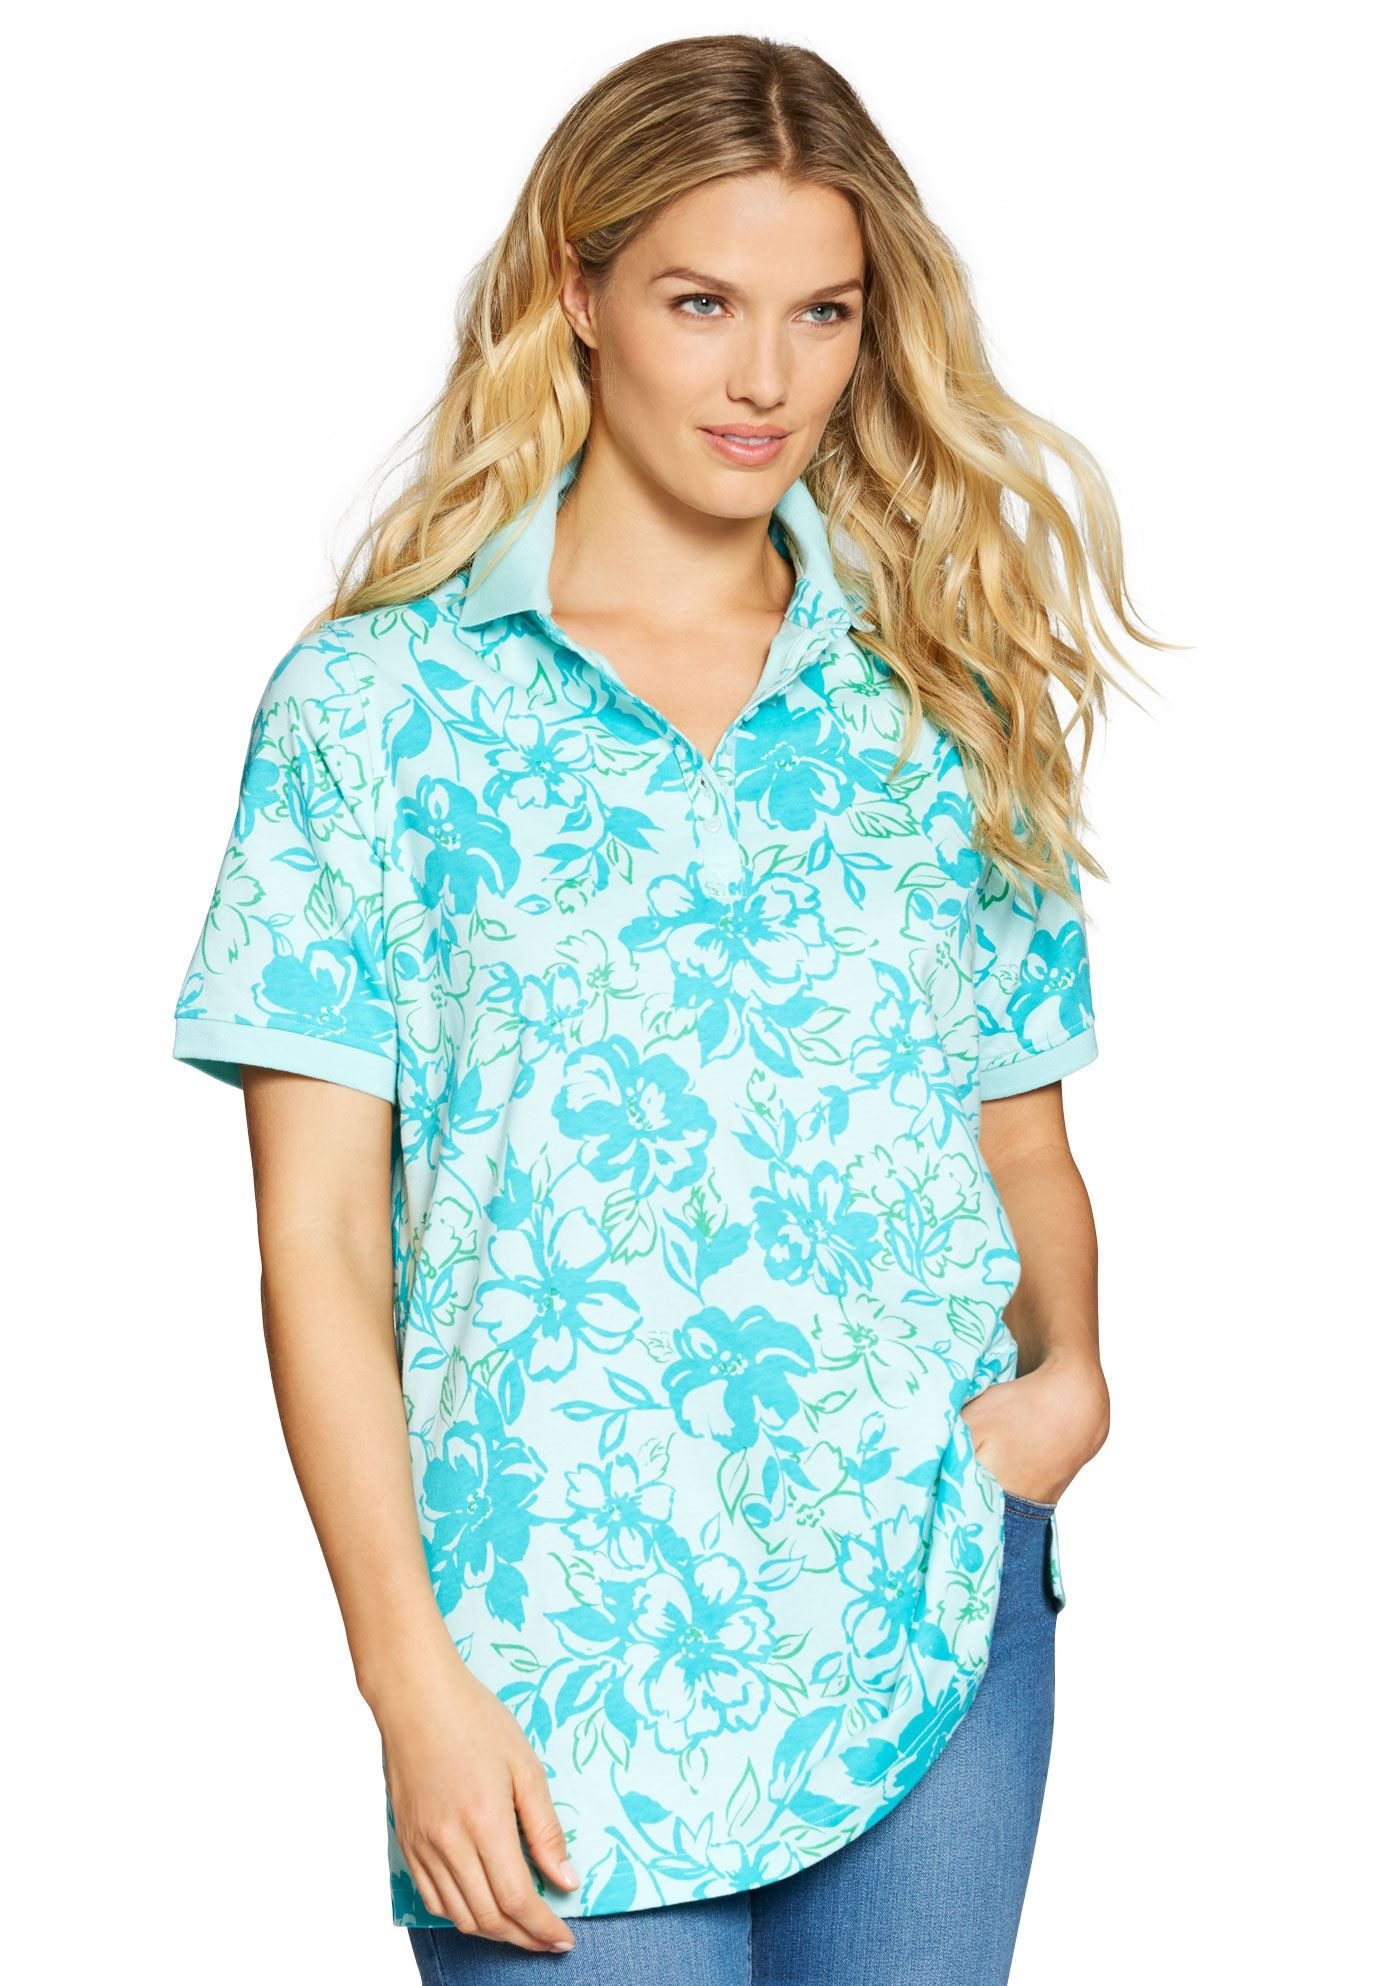 891f7ea3798 Perfect floral print polo T-shirt with short sleeves - Women s Plus Size  Clothing